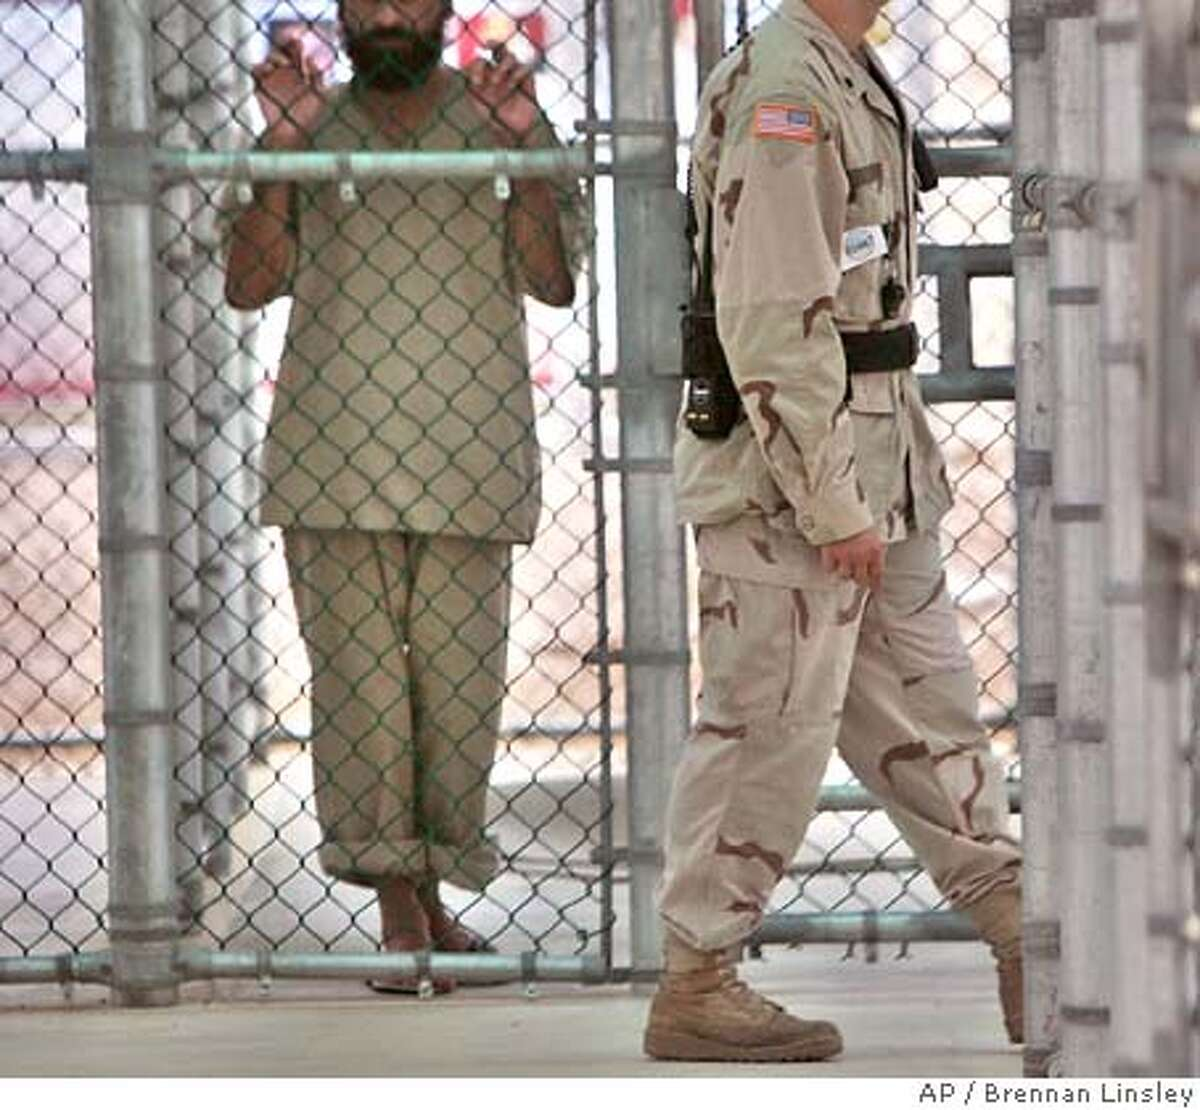 In this June 26, 2006 file photo, reviewed by US military officials, a detainee, name, nationality, and facial identification not permitted, holds onto a fence as a U.S. military guard walks past, within the grounds of the maximum security prison at Camp 5, at the Guantanamo Bay U.S. Naval Base, Cuba. President George W. Bush on Wednesday Sept. 6 acknowledged the existence of CIA prisons around the world, and said 14 high-value terrorism suspects, including the mastermind of the Sept. 11 attacks, have been transferred from this system to the military prison at Guantanamo Bay for eventual trials. (AP Photo/Brennan Linsley, Pool) Ran on: 09-08-2006 A detainee holds onto a fence at the Guantanamo Bay detention center, which took custody of prisoners from CIA facilities this week. Ran on: 09-08-2006 A detainee holds onto a fence at the Guantanamo Bay detention center, which took custody of prisoners from CIA facilities this week. FILE PHOTO FROM JUNE 26 2006 TO BE MOVED SEPT 6. EDS: PHOTO HAS BEEN REVIEWED BY US MILITARY OFFICIALS